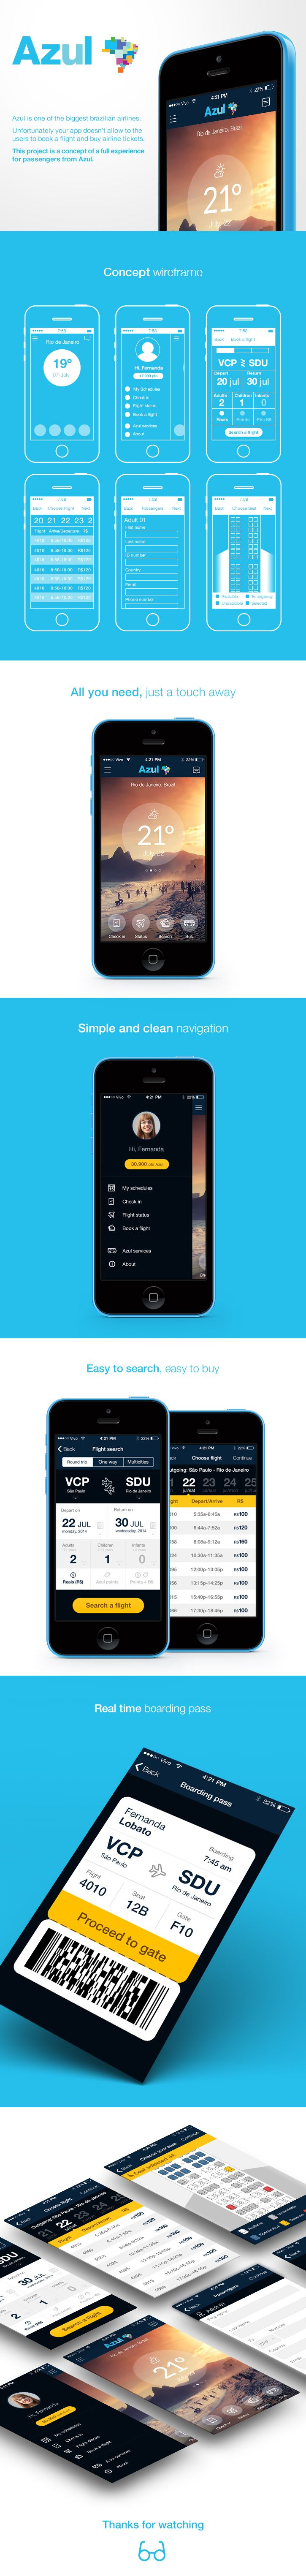 Azul Airlines – Iphone App #afsolution #kaoscommunication                                                                                                                                                      More